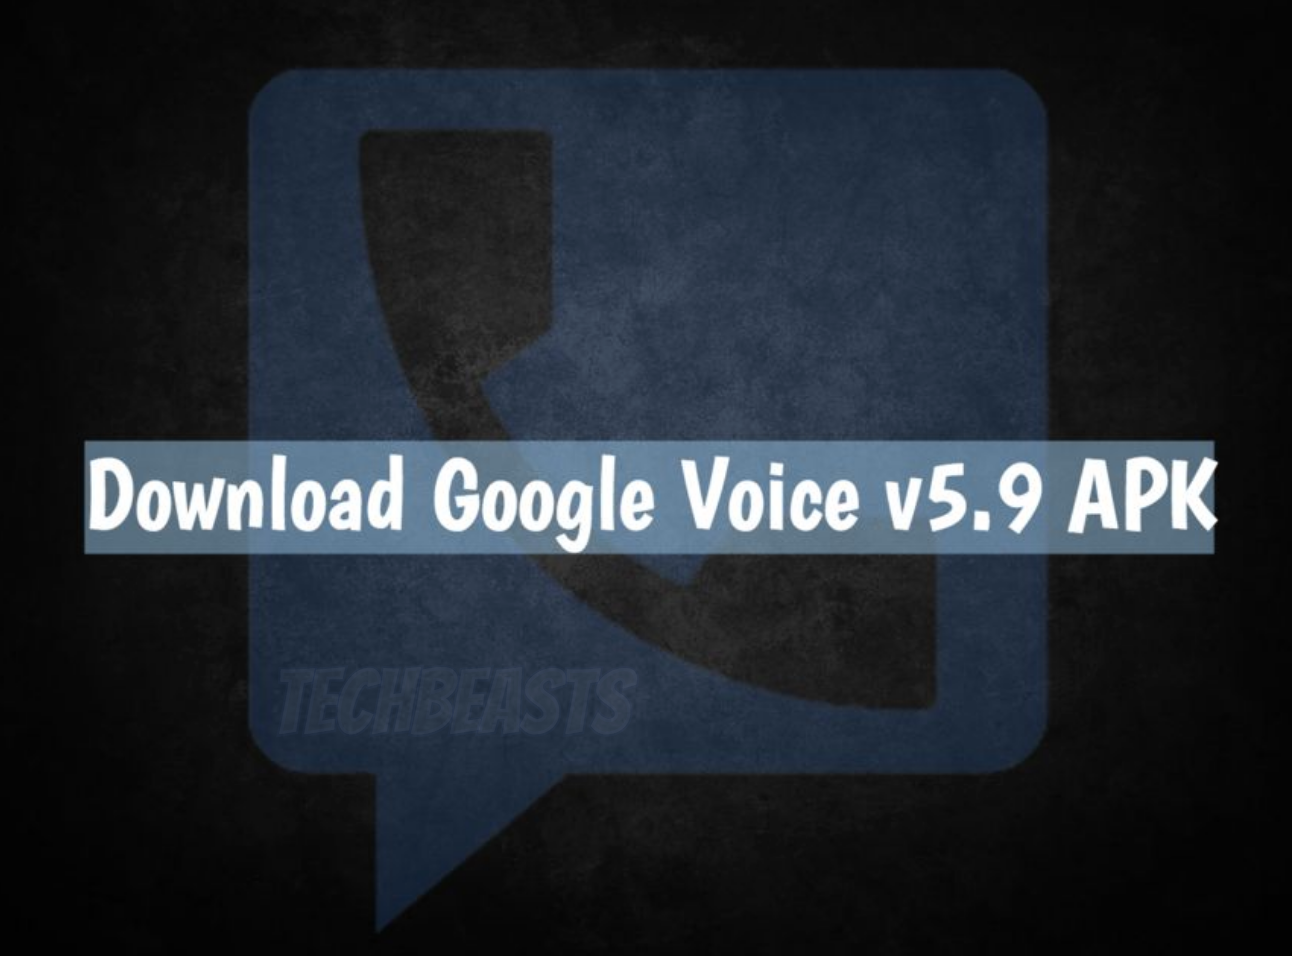 Custom voicemail greeting google voice images greeting card examples google voice v59 apk let you record voicemail greetings google voice v59 apk let you record kristyandbryce Image collections